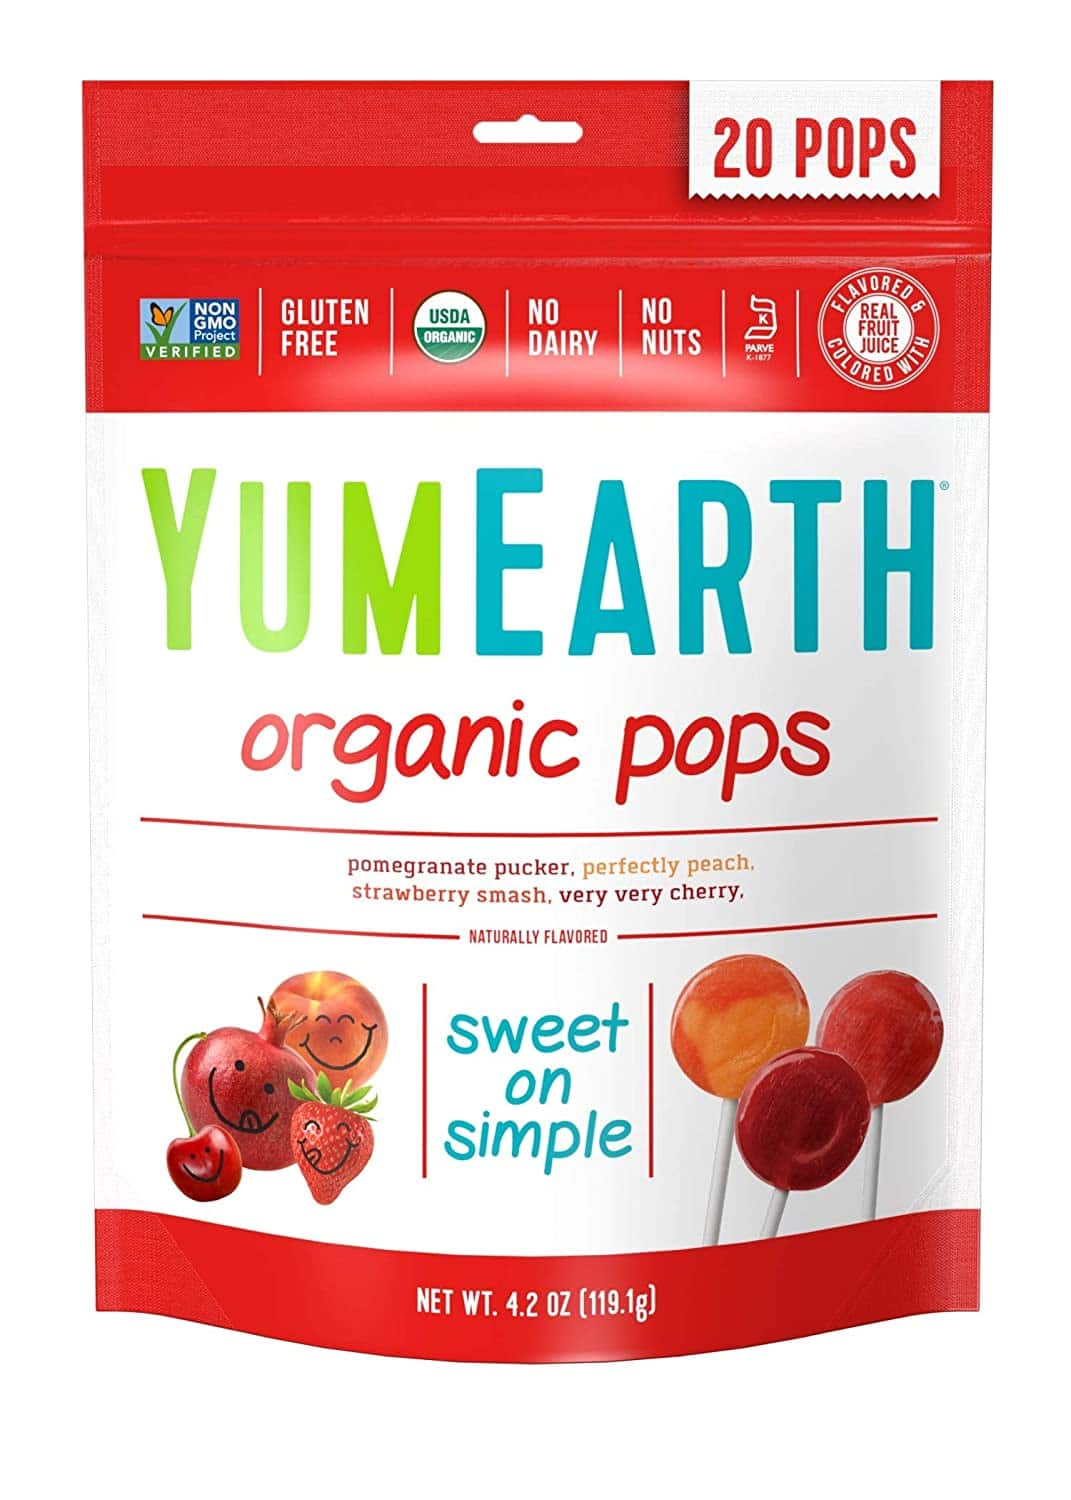 YumEarth Organic Lollipops, Assorted Flavors, 4.2 Ounce, 20 Lollipops: $2.84 or less w/S&S